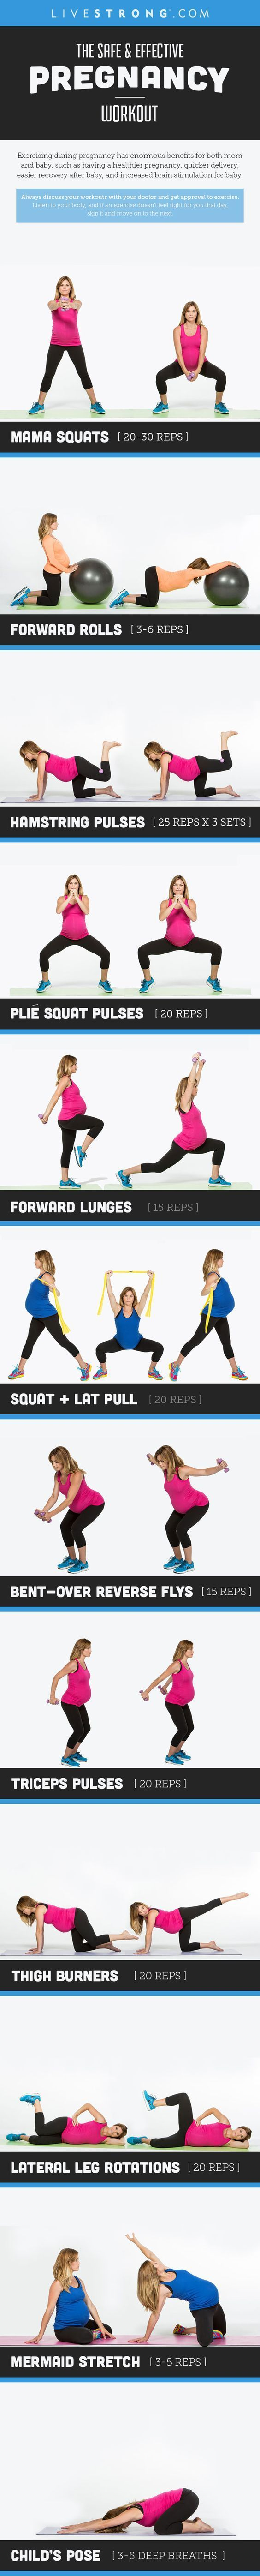 5 Safe and Effective Resistance Band Exercises for a Fit Pregnancy